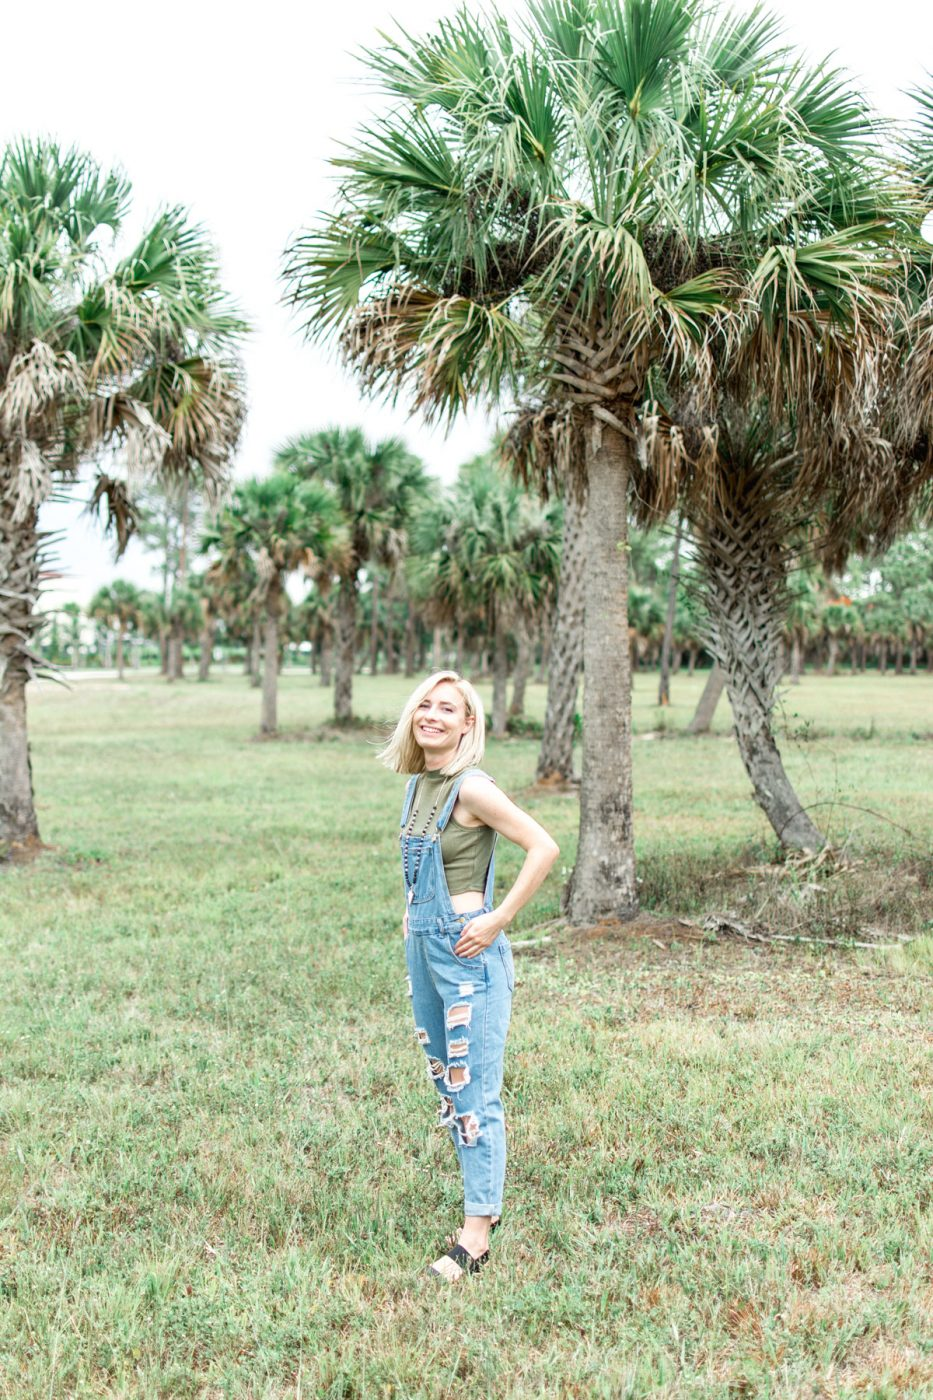 Romwe Denim Jumpsuit - Jenny Bess of Sweet Teal